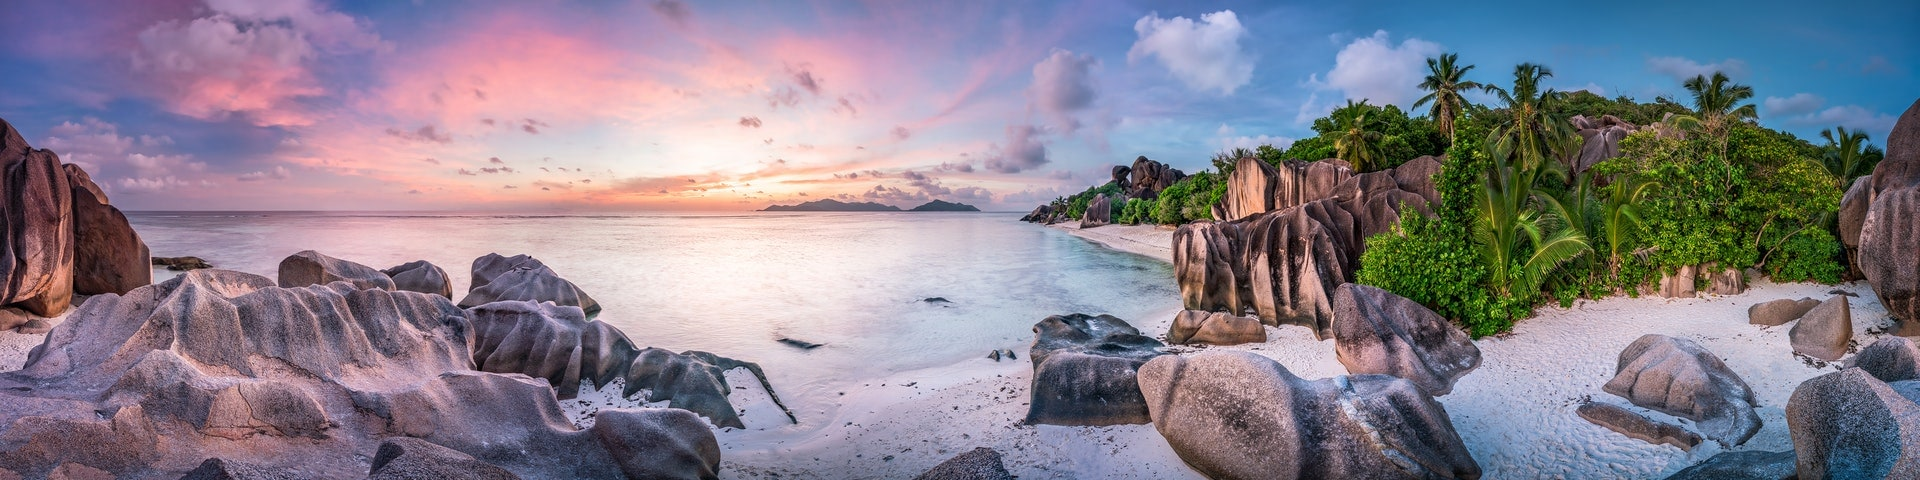 Beach at la digue seychelles